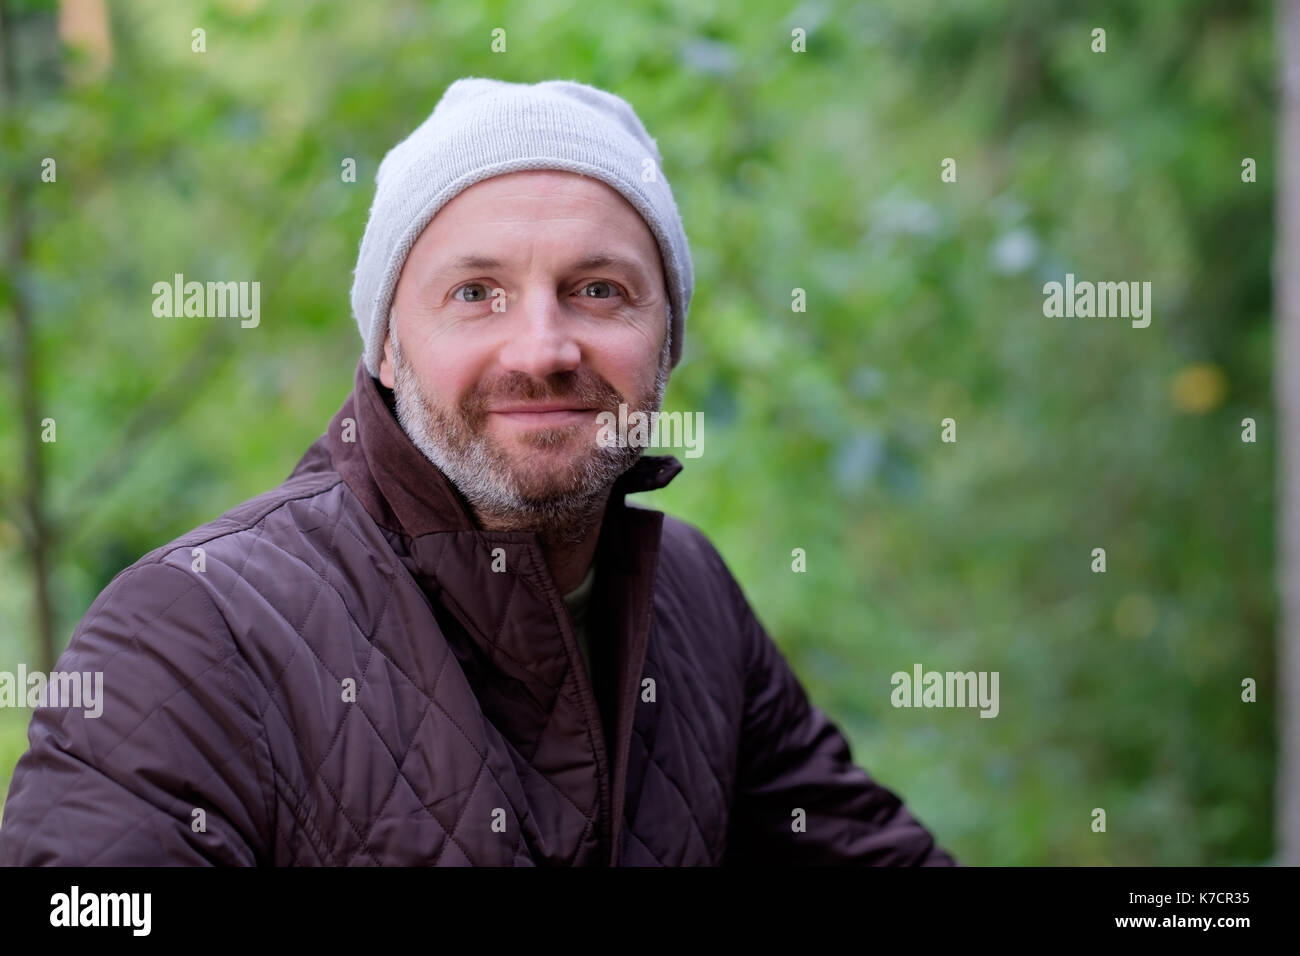 Handsome man smiling in chapeau chaud et veste looking at camera Photo Stock